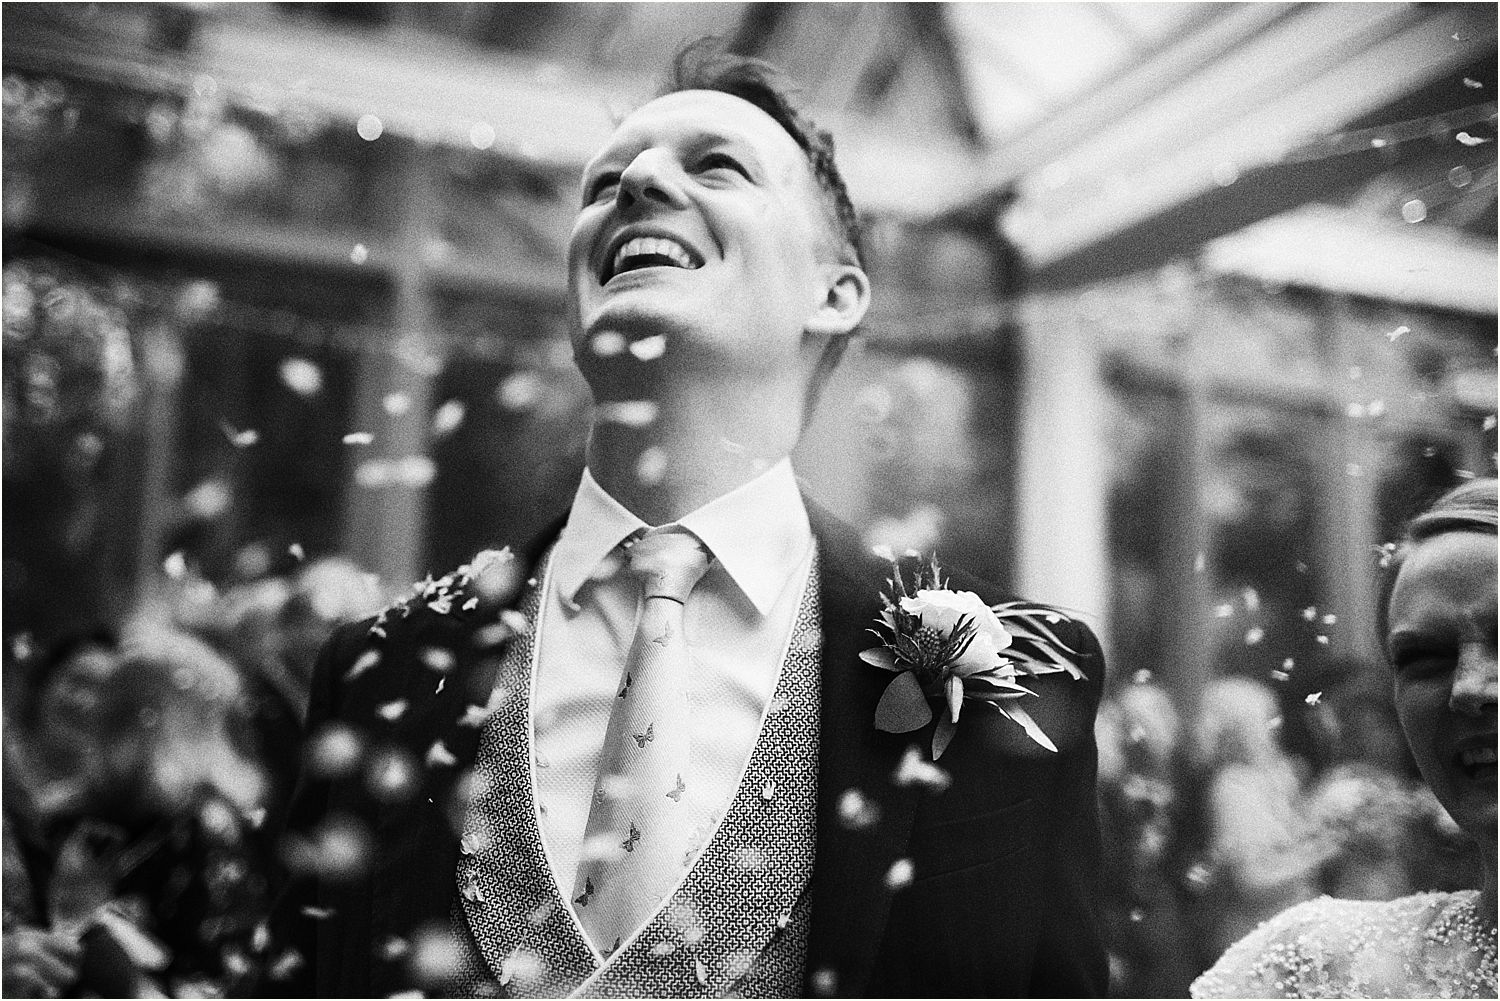 Groom laughing at confetti around him at Surrey wedding venue Hamtpon Court House